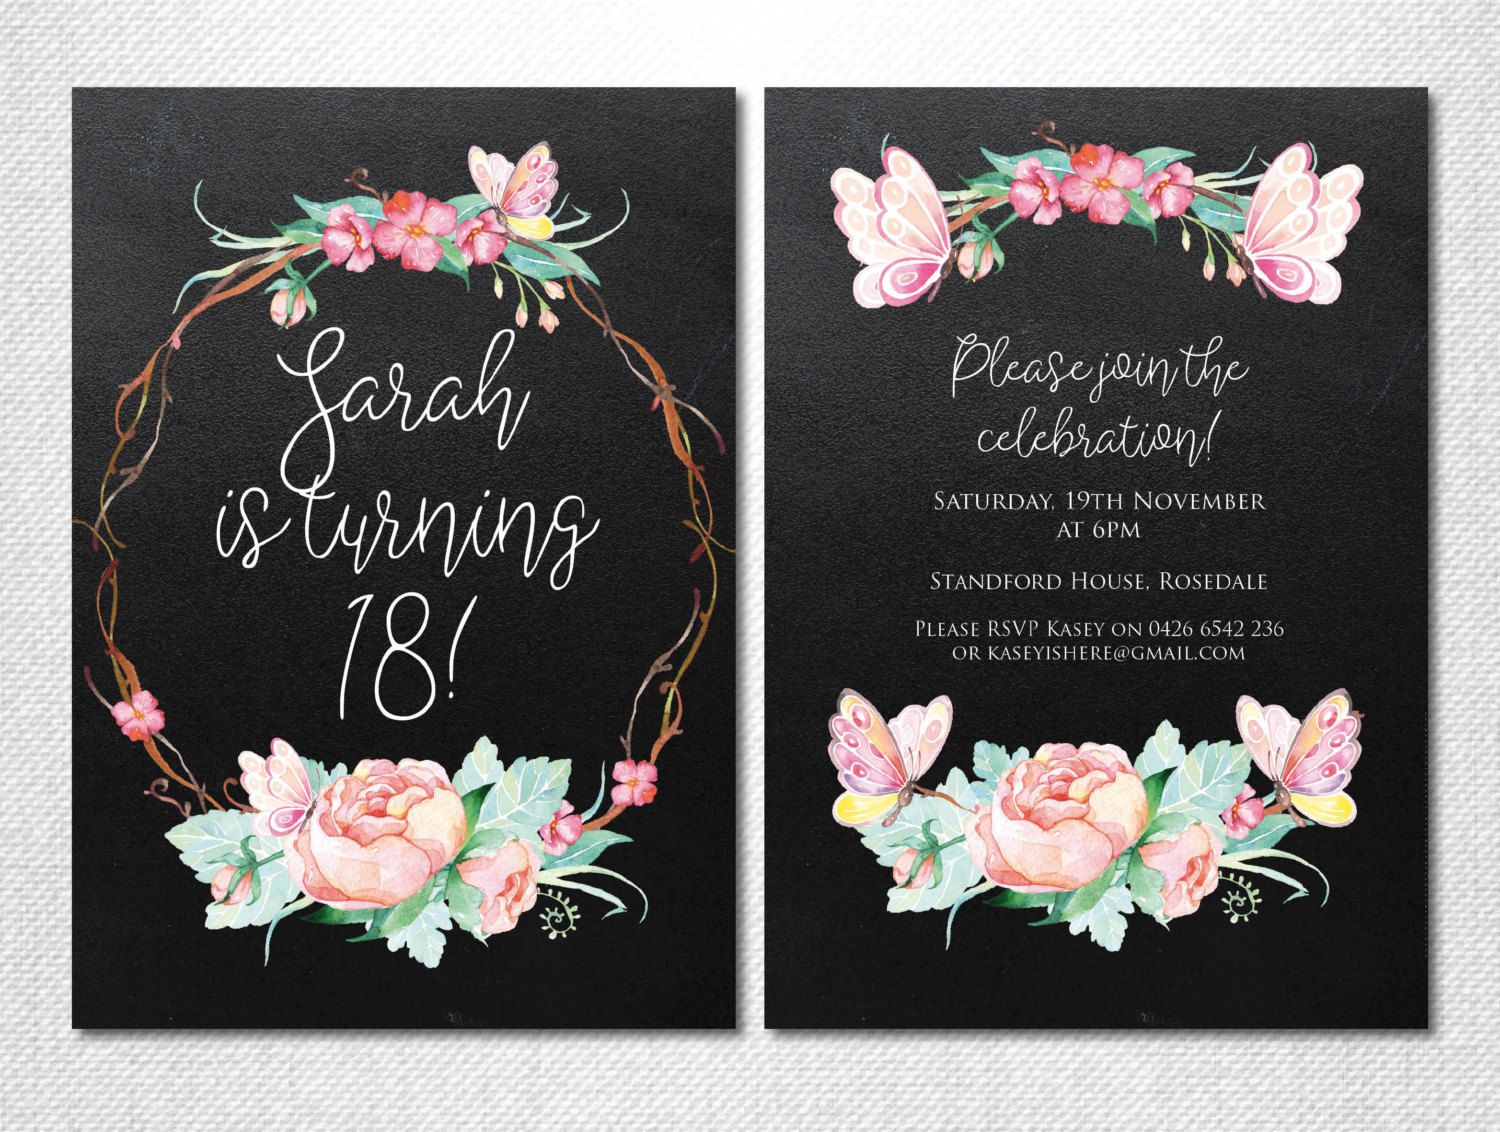 Floral Invitation 18th Birthday Party Butterfly Invitation – Invitation for 18th Birthday